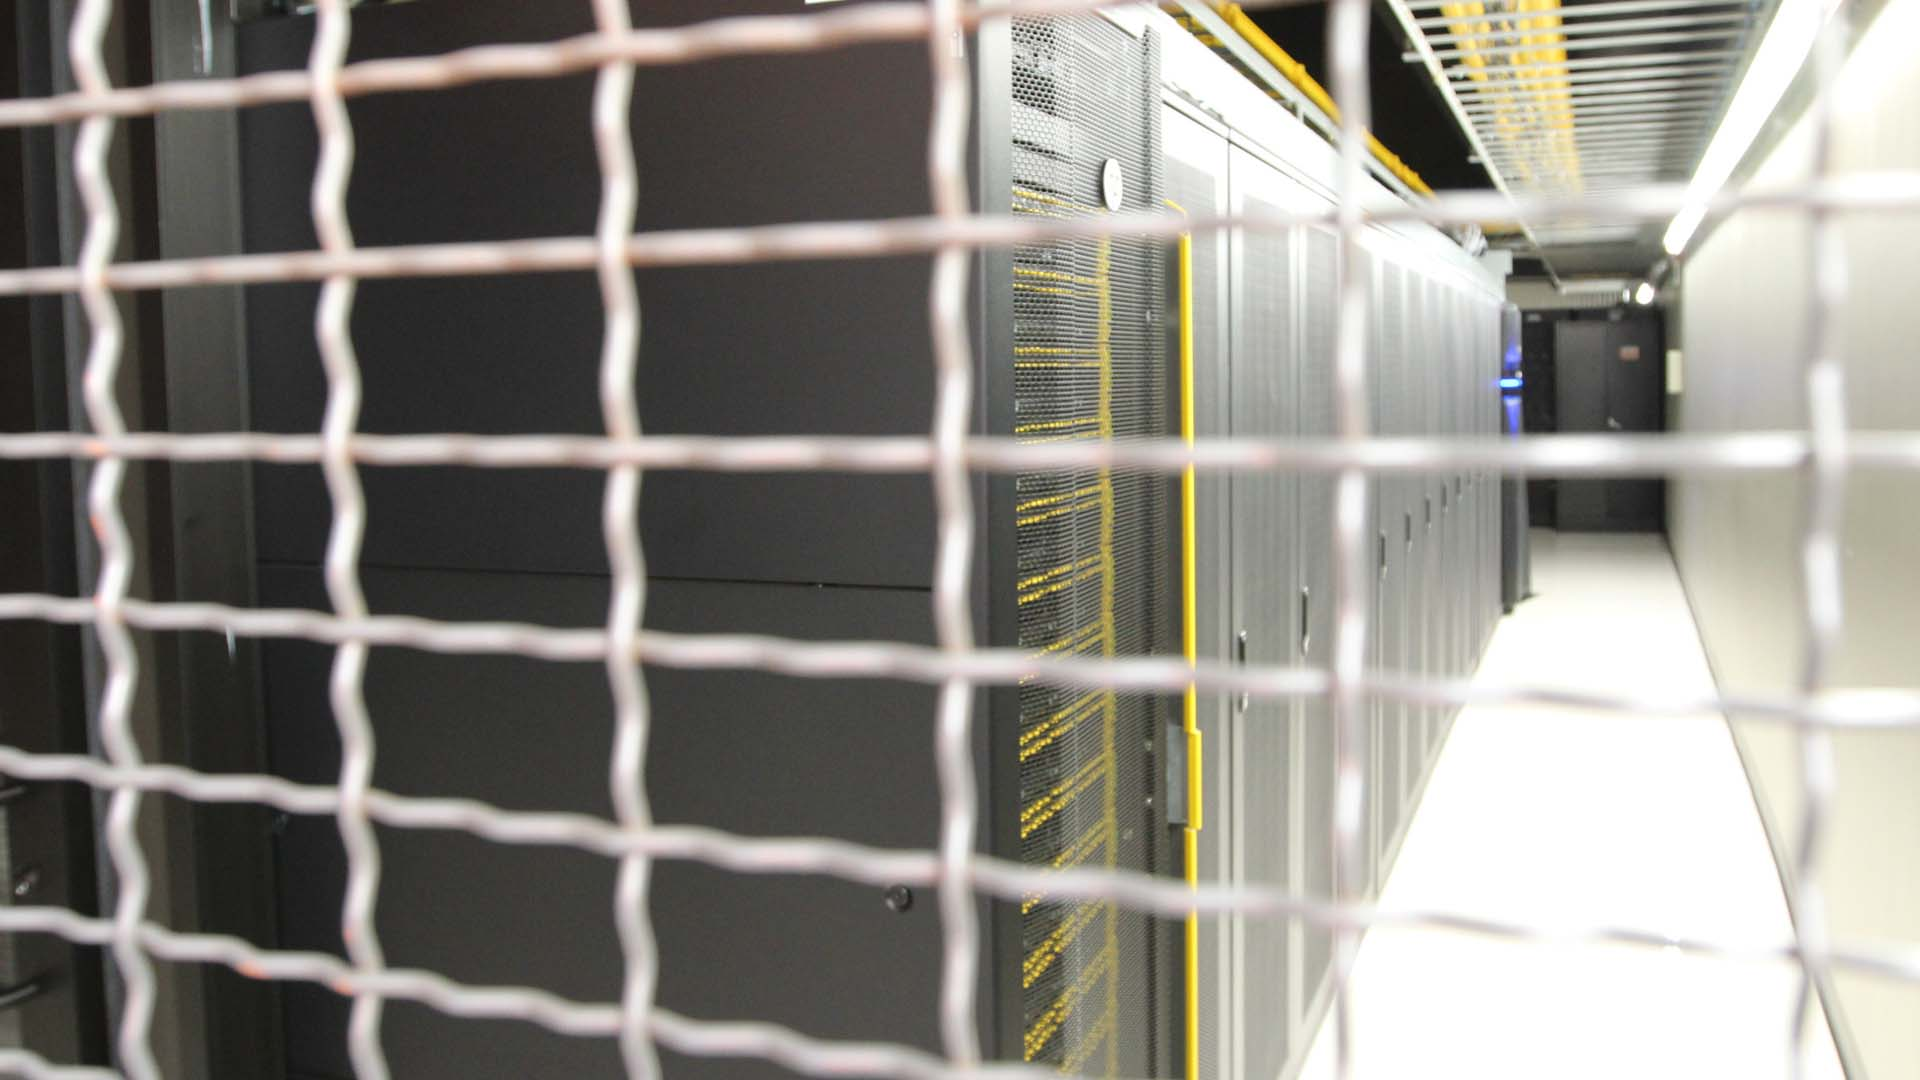 123Net Michigan data centers provide private colocation suites and cage options depending on your needs.